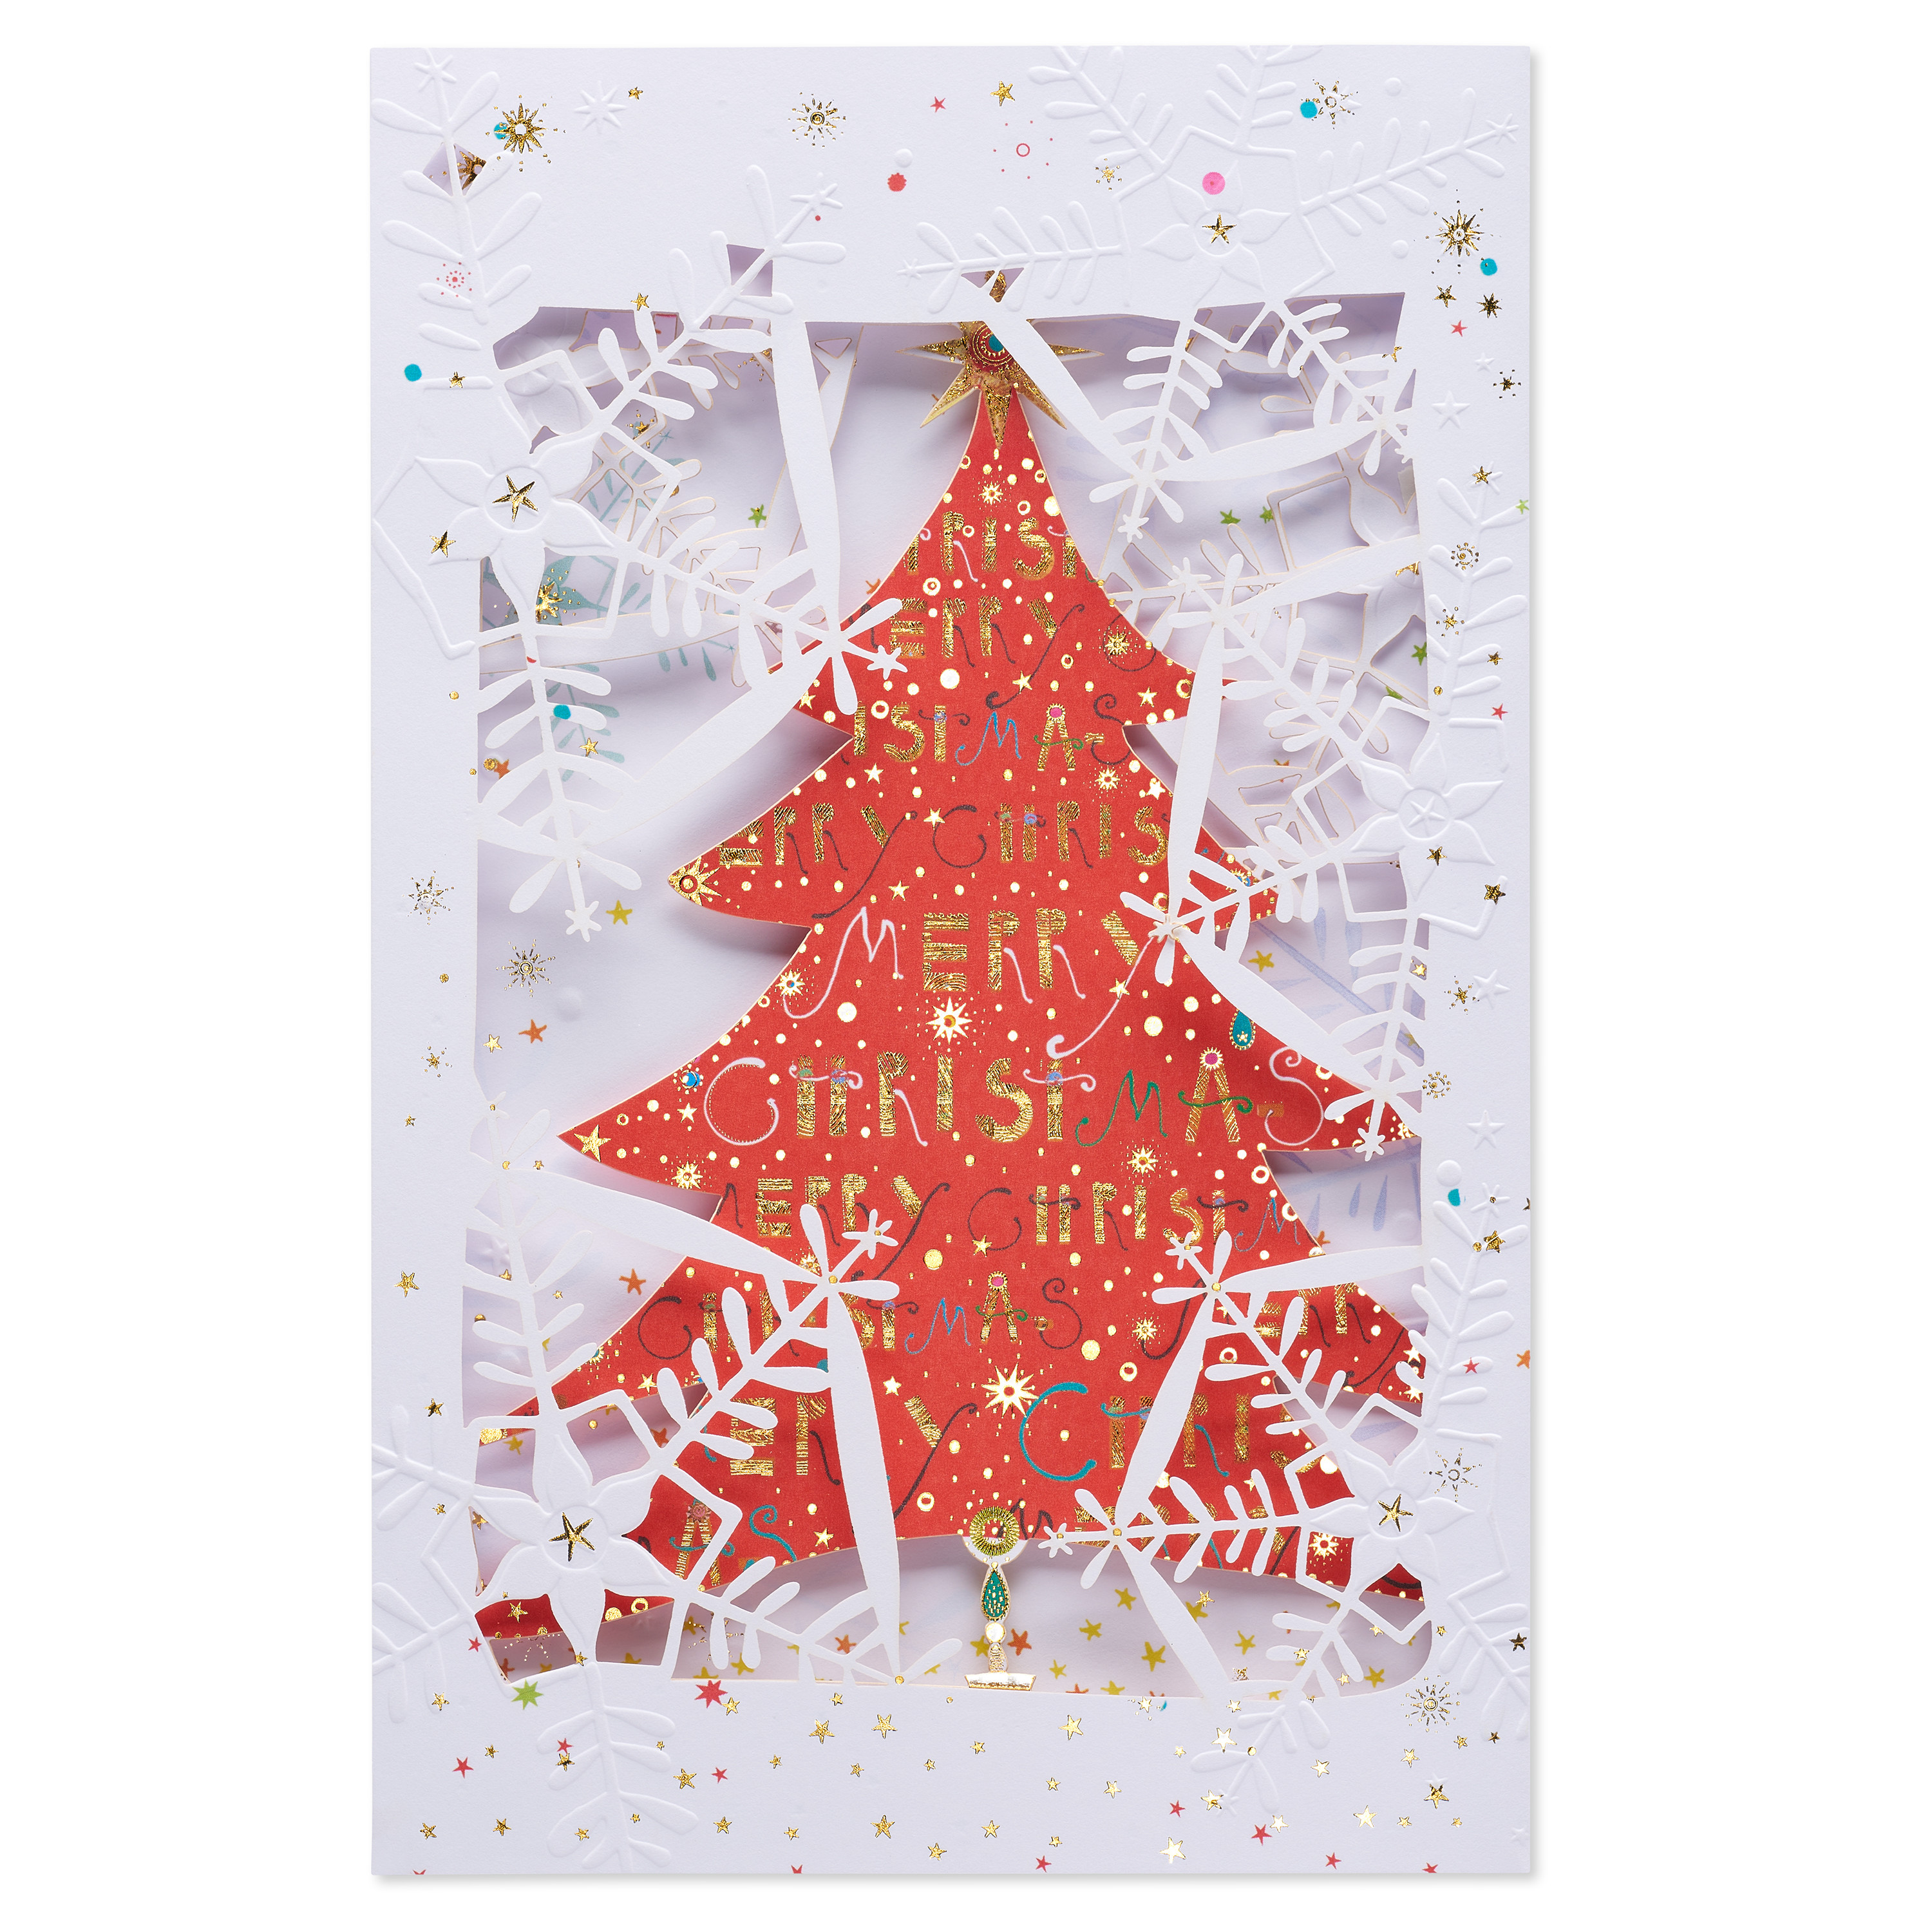 AMERICAN GREETINGS® Believing and Remembering Christmas Card with Foil